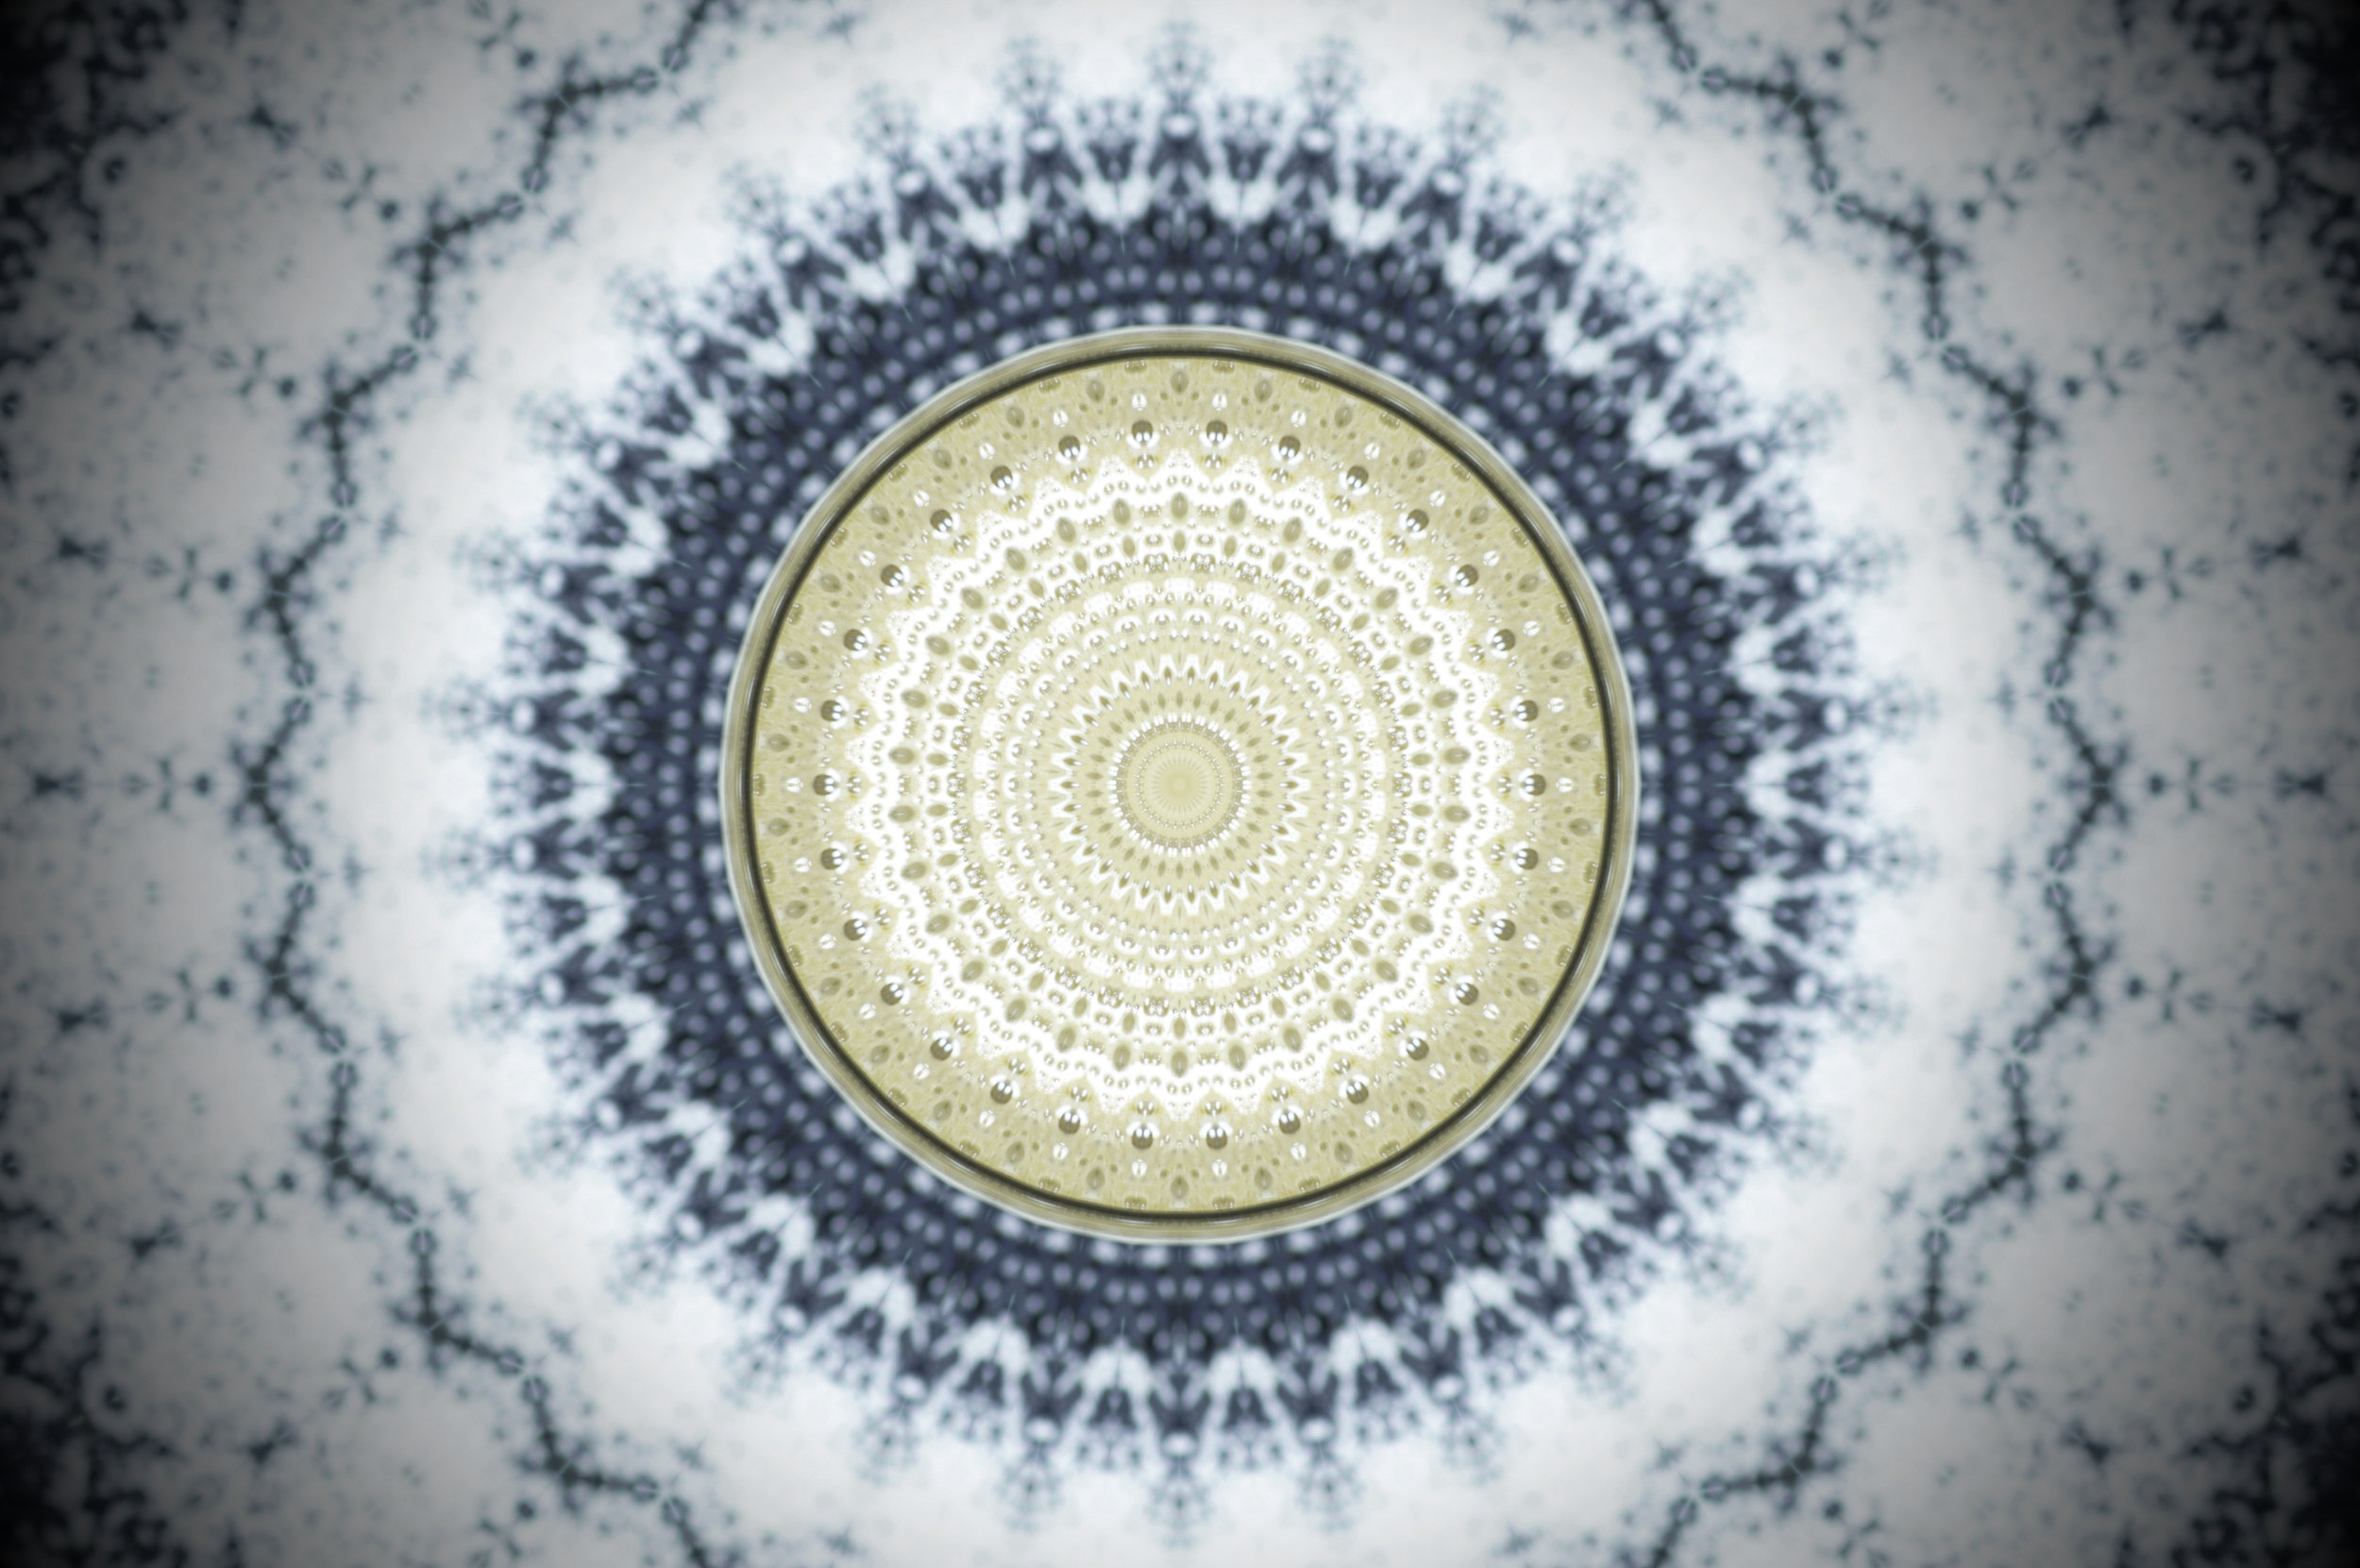 Blue-White-Radial-Mandala-670334284_4912x3264.jpeg